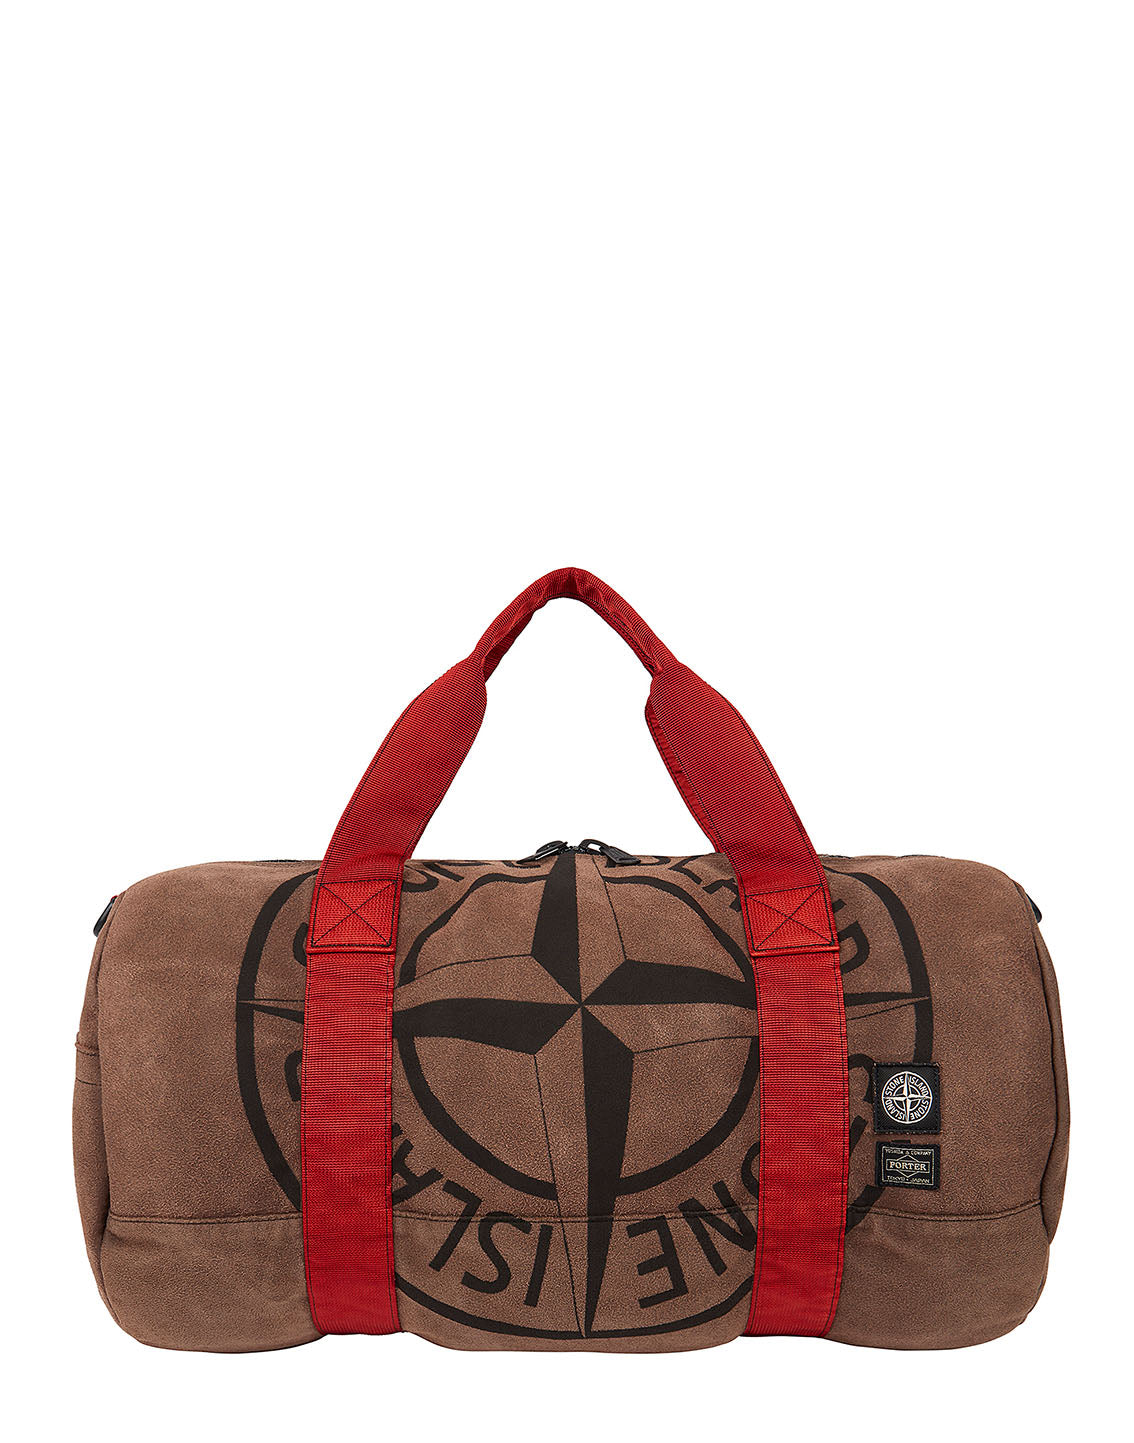 913P1 STONE ISLAND/PORTER STONE ISLAND MAN MADE SUEDE_GARMENT DYED BAG in Brick Red